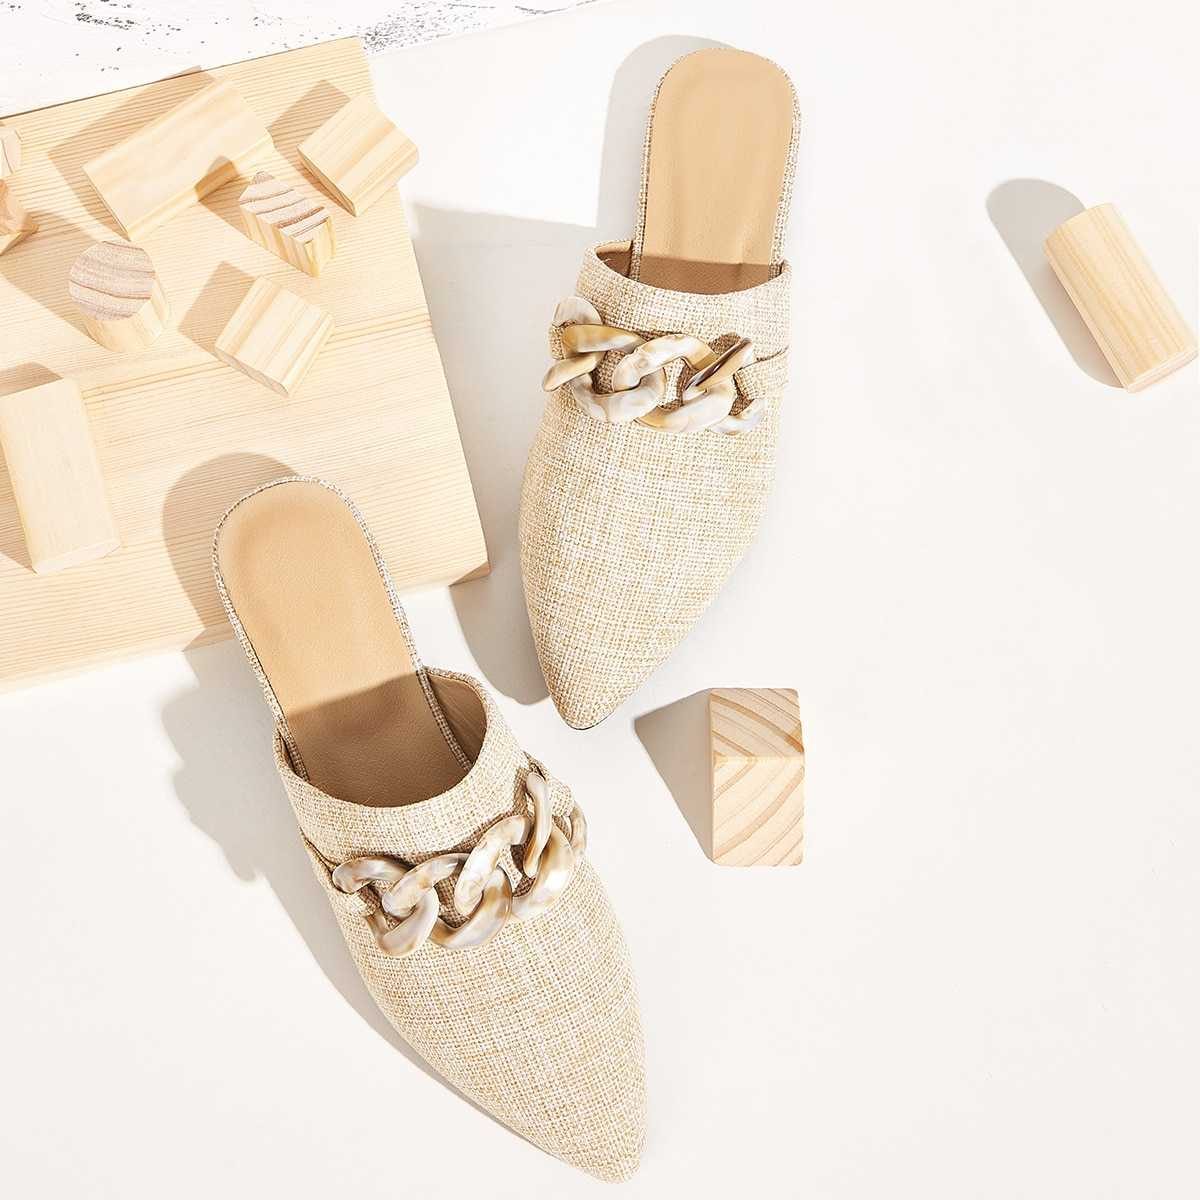 Point Toe Chain Decor Flat Mules in Apricot by ROMWE on GOOFASH